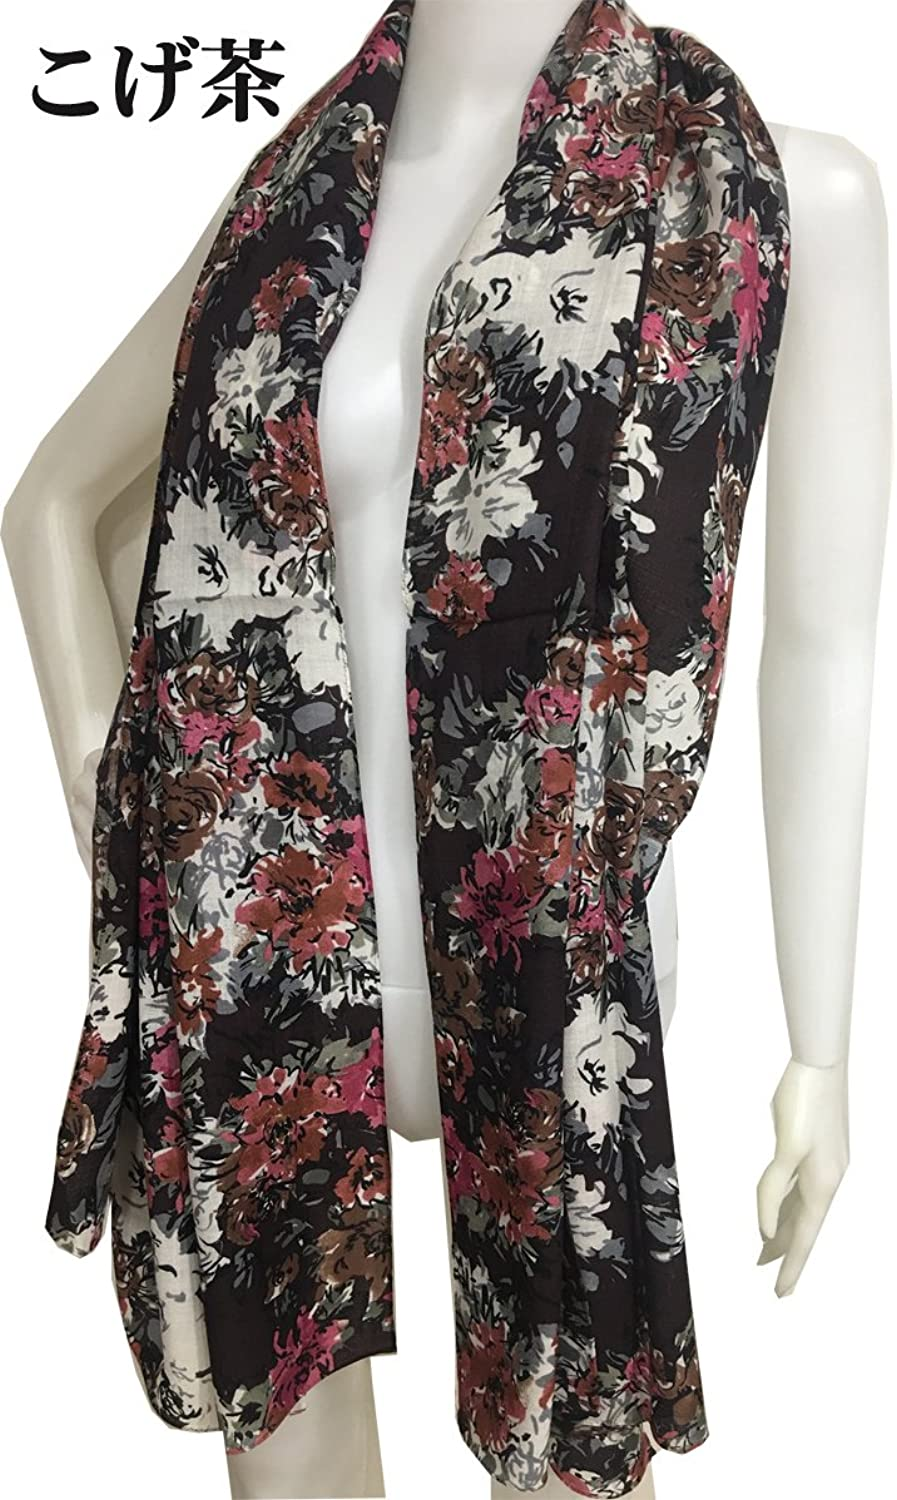 WT78188052 Nature pink, Wool Long Scarf of Light Weight, Designed Stole, Gift Cased (Dark Brown)